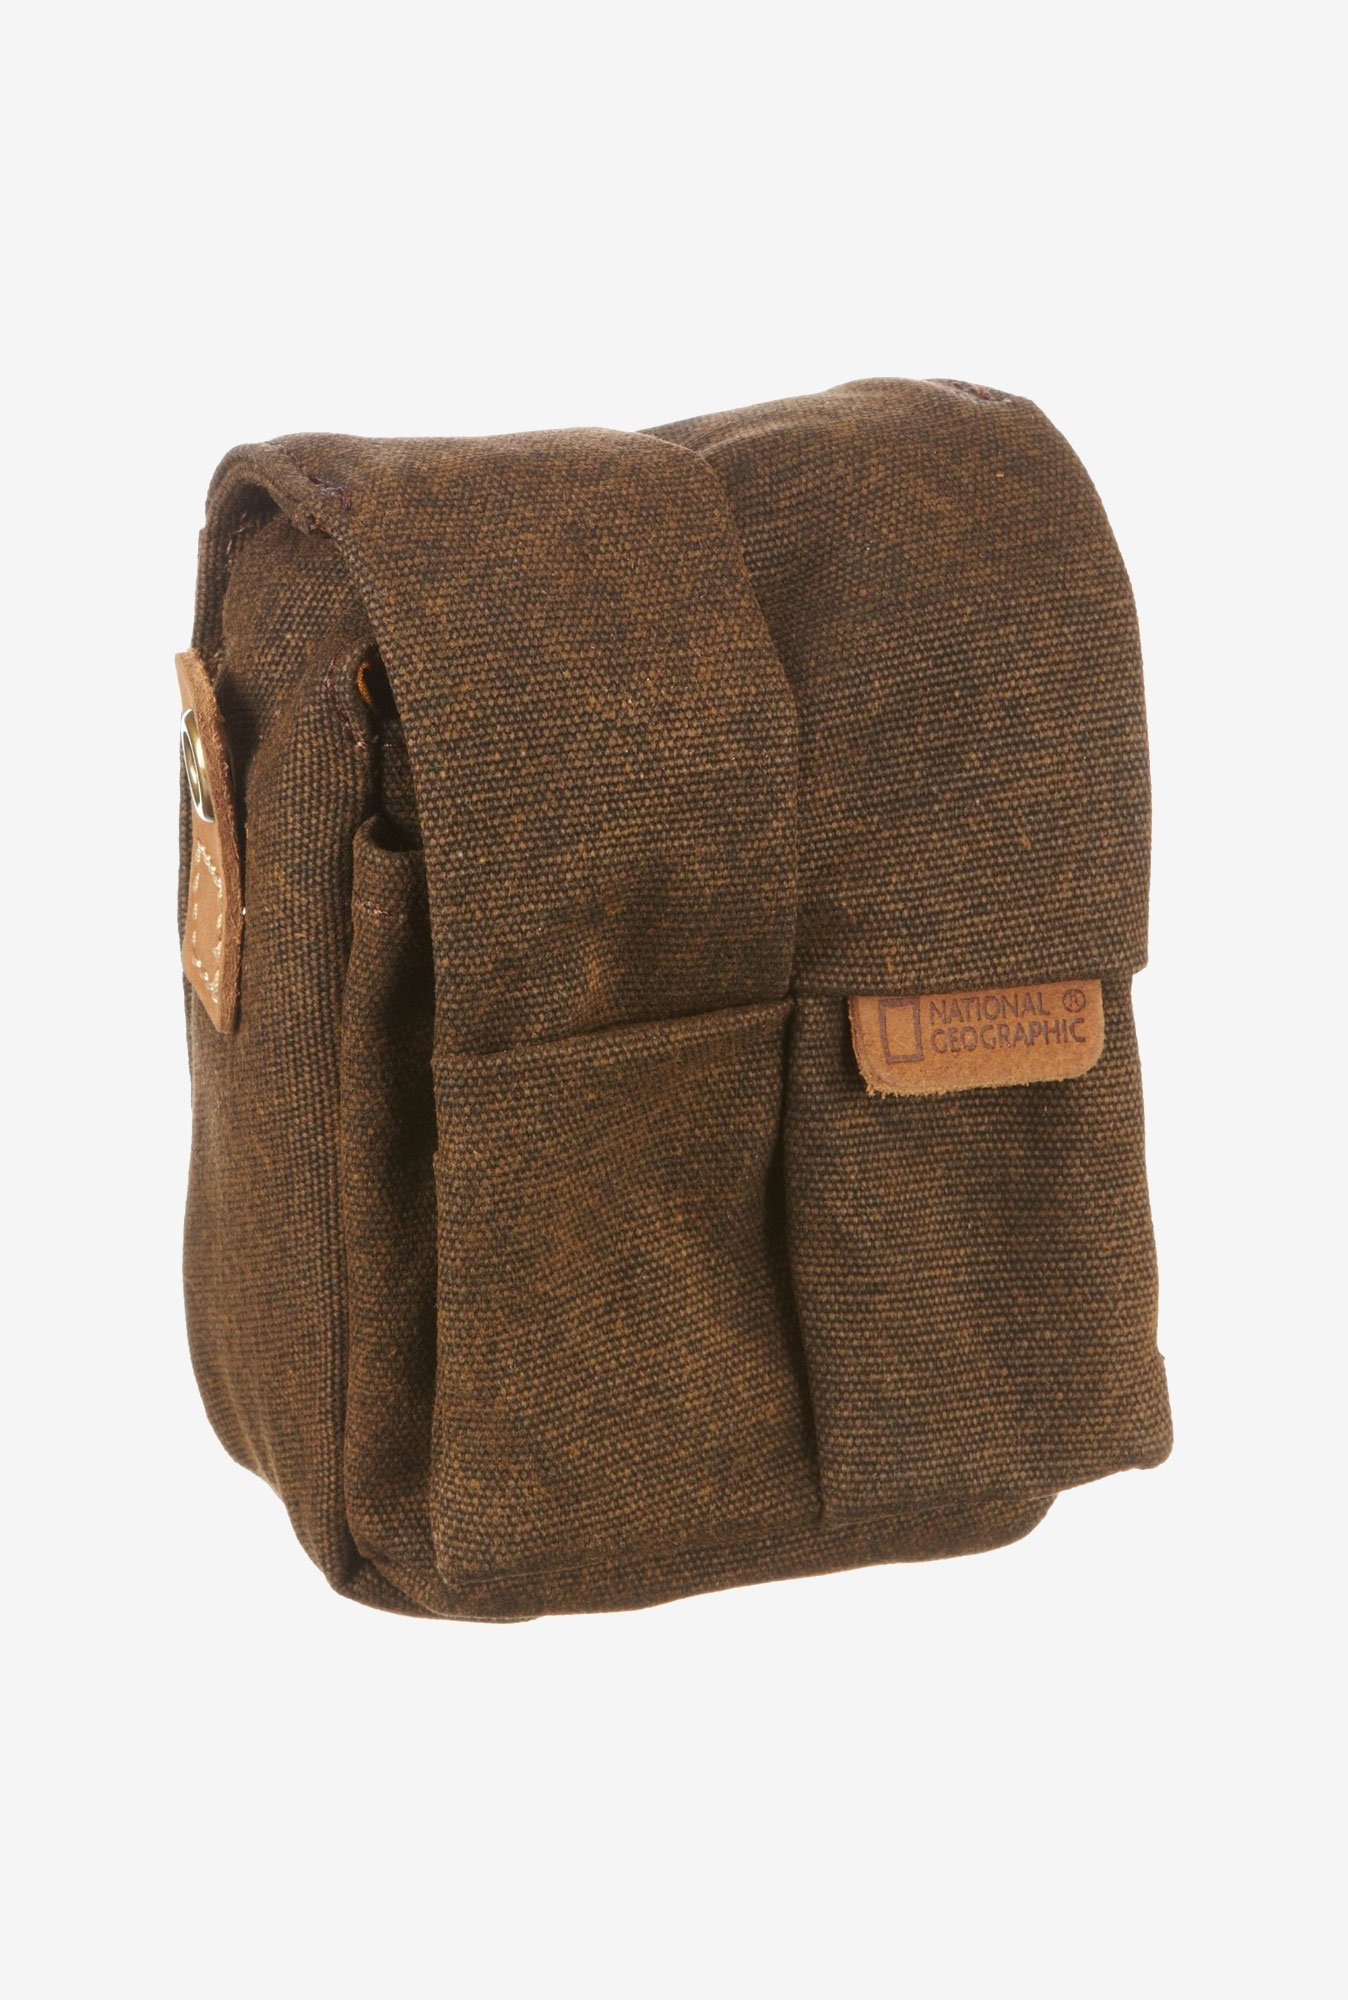 National Geographic NG A1212 Vertical Pouch (Brown)